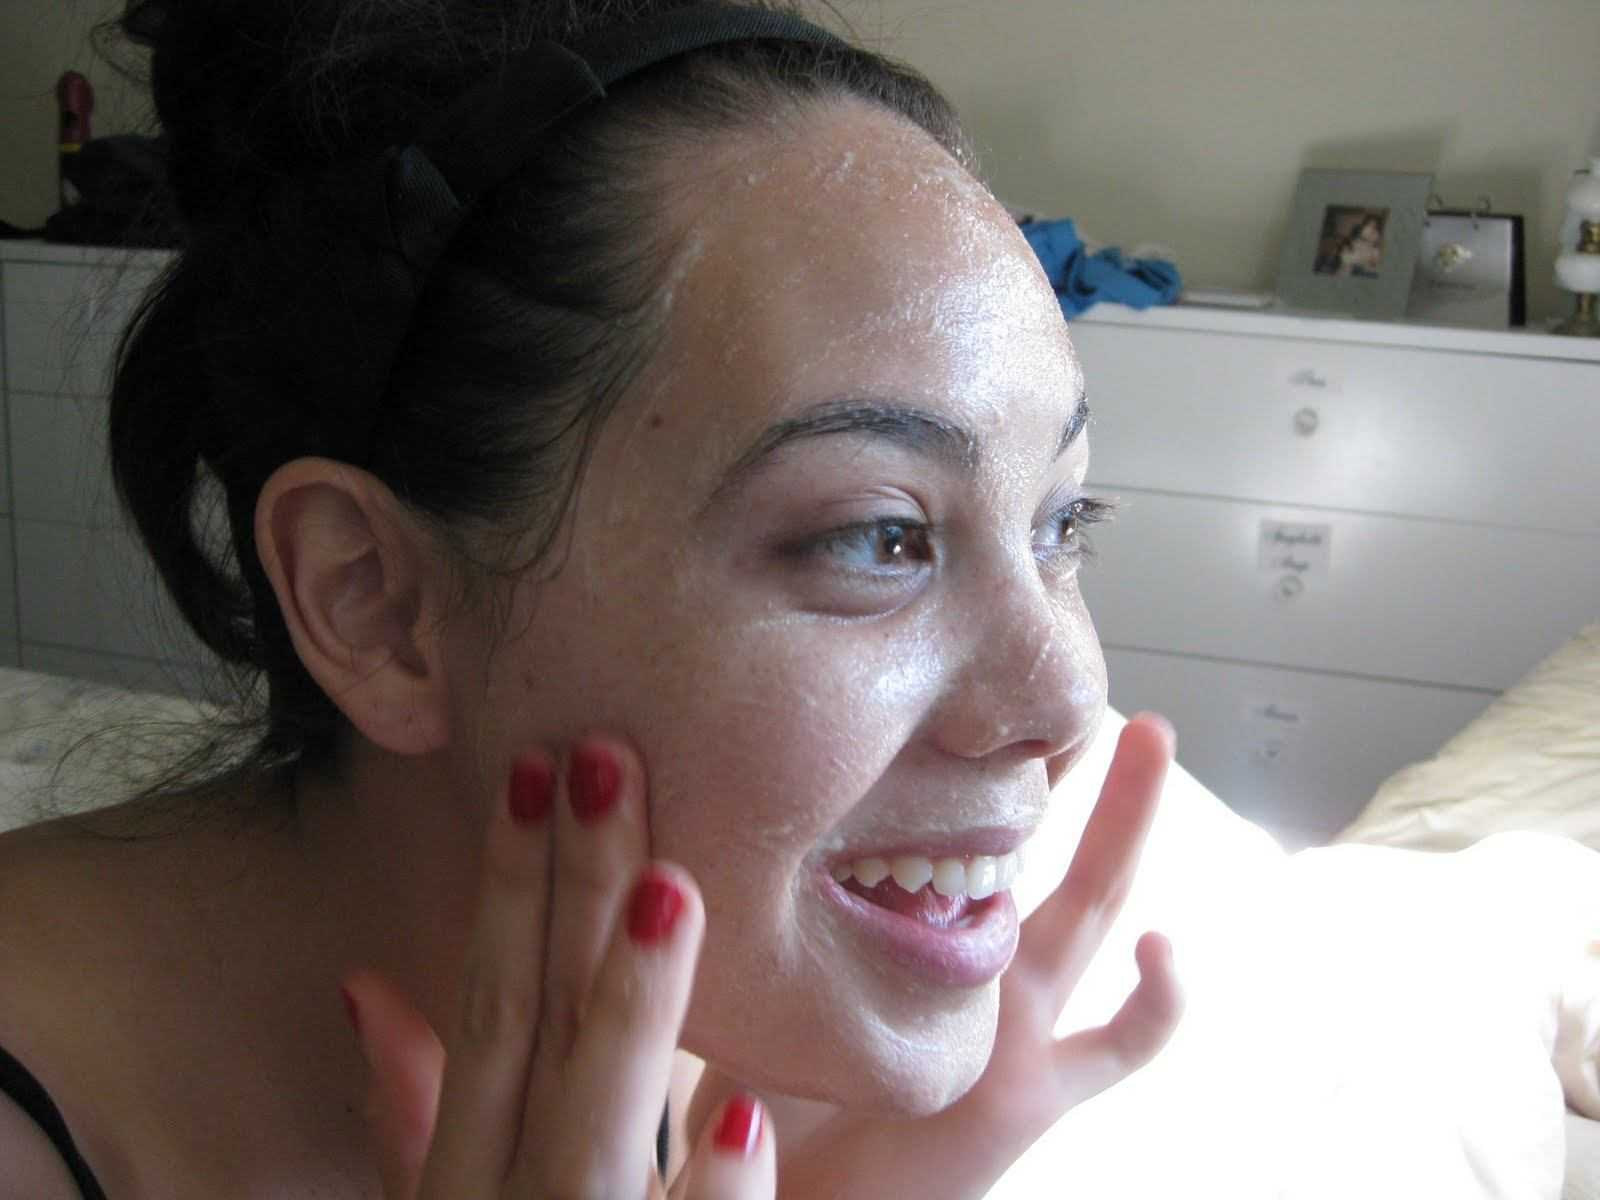 Diy microdermabrasion at home step by step guide solutioingenieria Gallery